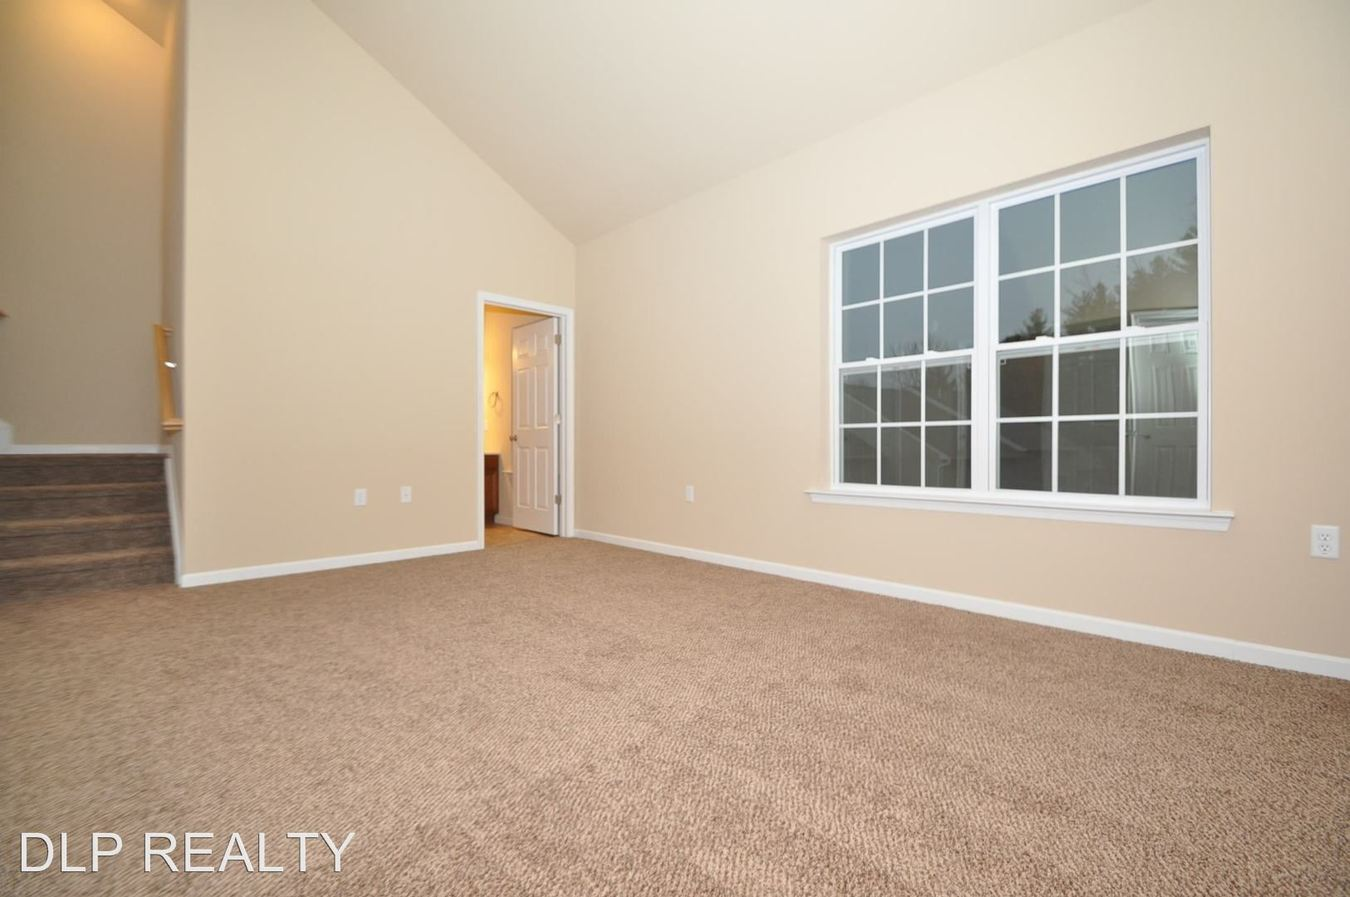 3 Bedrooms 2 Bathrooms Apartment for rent at 305 Cervina Court in East Stroudsburg, PA